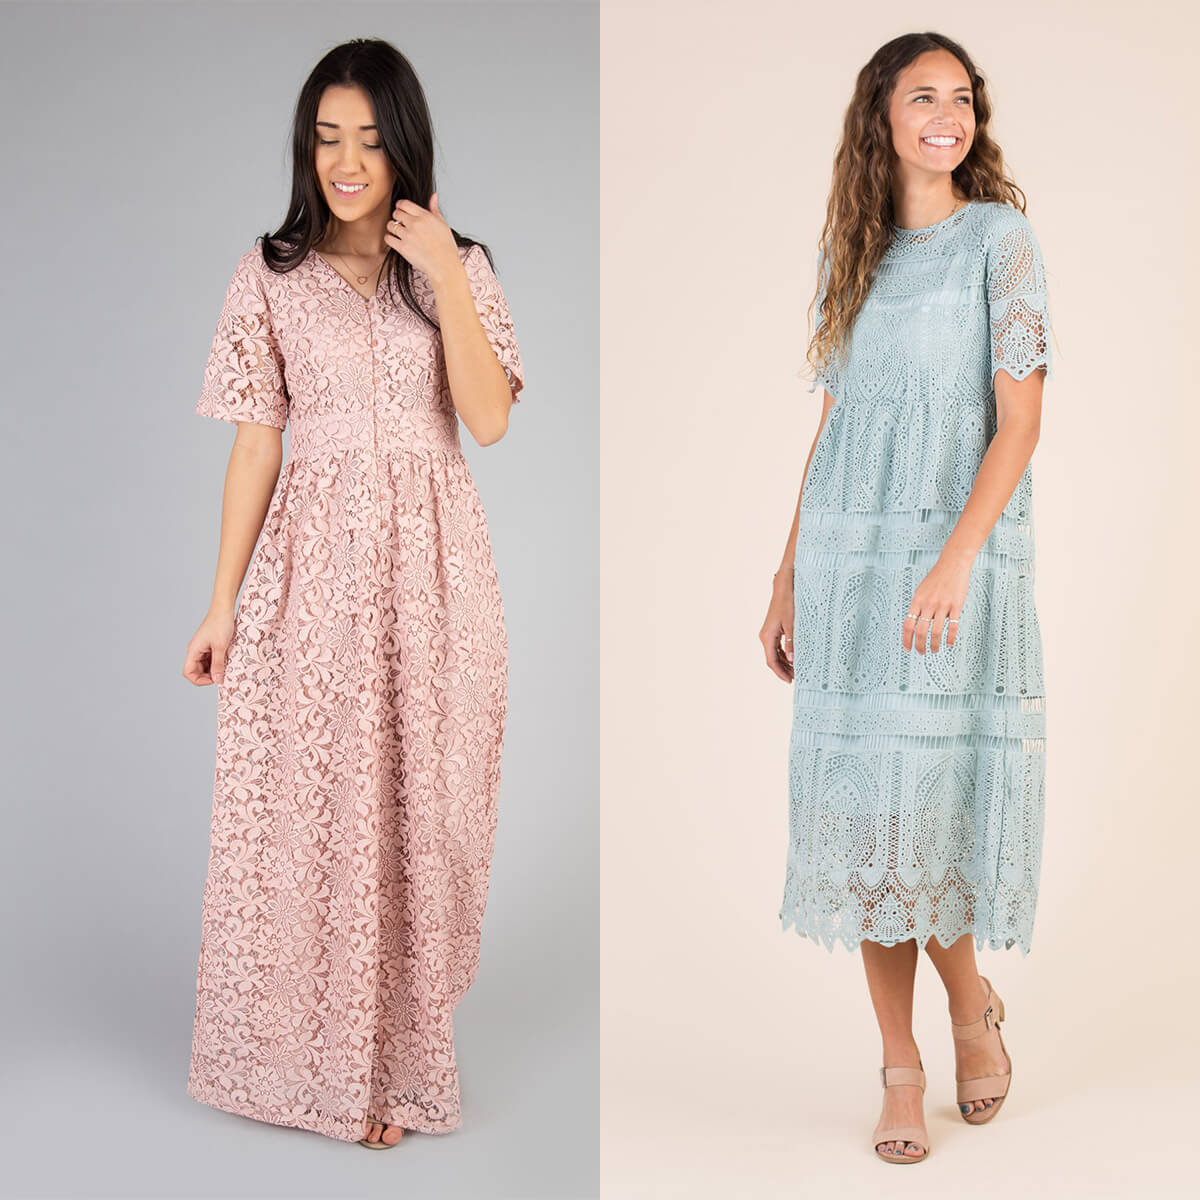 KAYLIE LACE MAXI & CONCERTO LACE DRESS:these dresses aren't necessarily unique, but as bridesmaid dresses they are! the lace designs are so perfect for spring, and you could even pull off the blue one in a summer beach wedding. - from Called to Surf